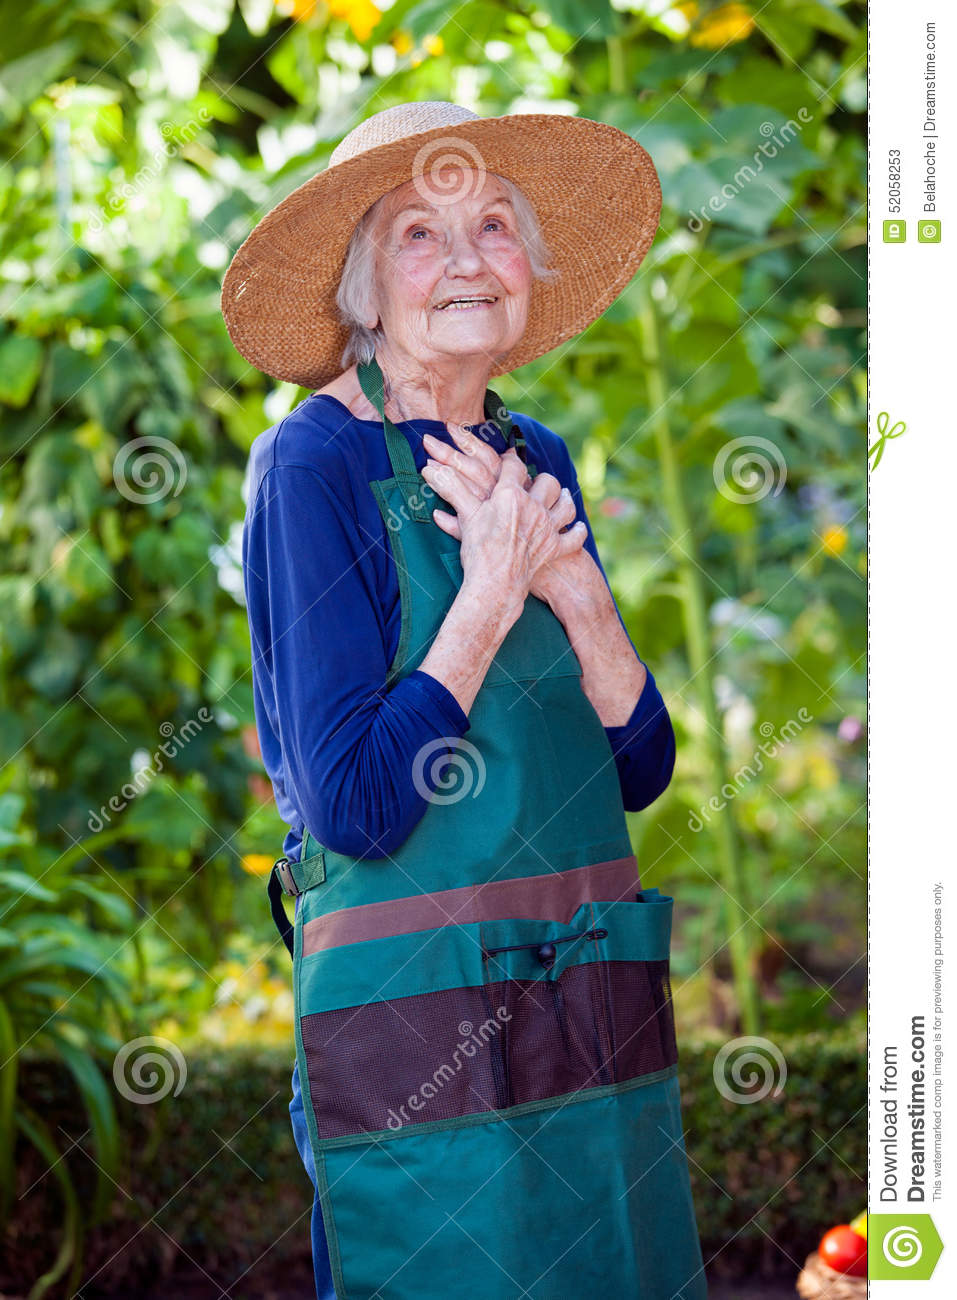 9c6265dbcc65e Thoughtful Senior Woman In Garden Hat And Apron Stock Image - Image ...